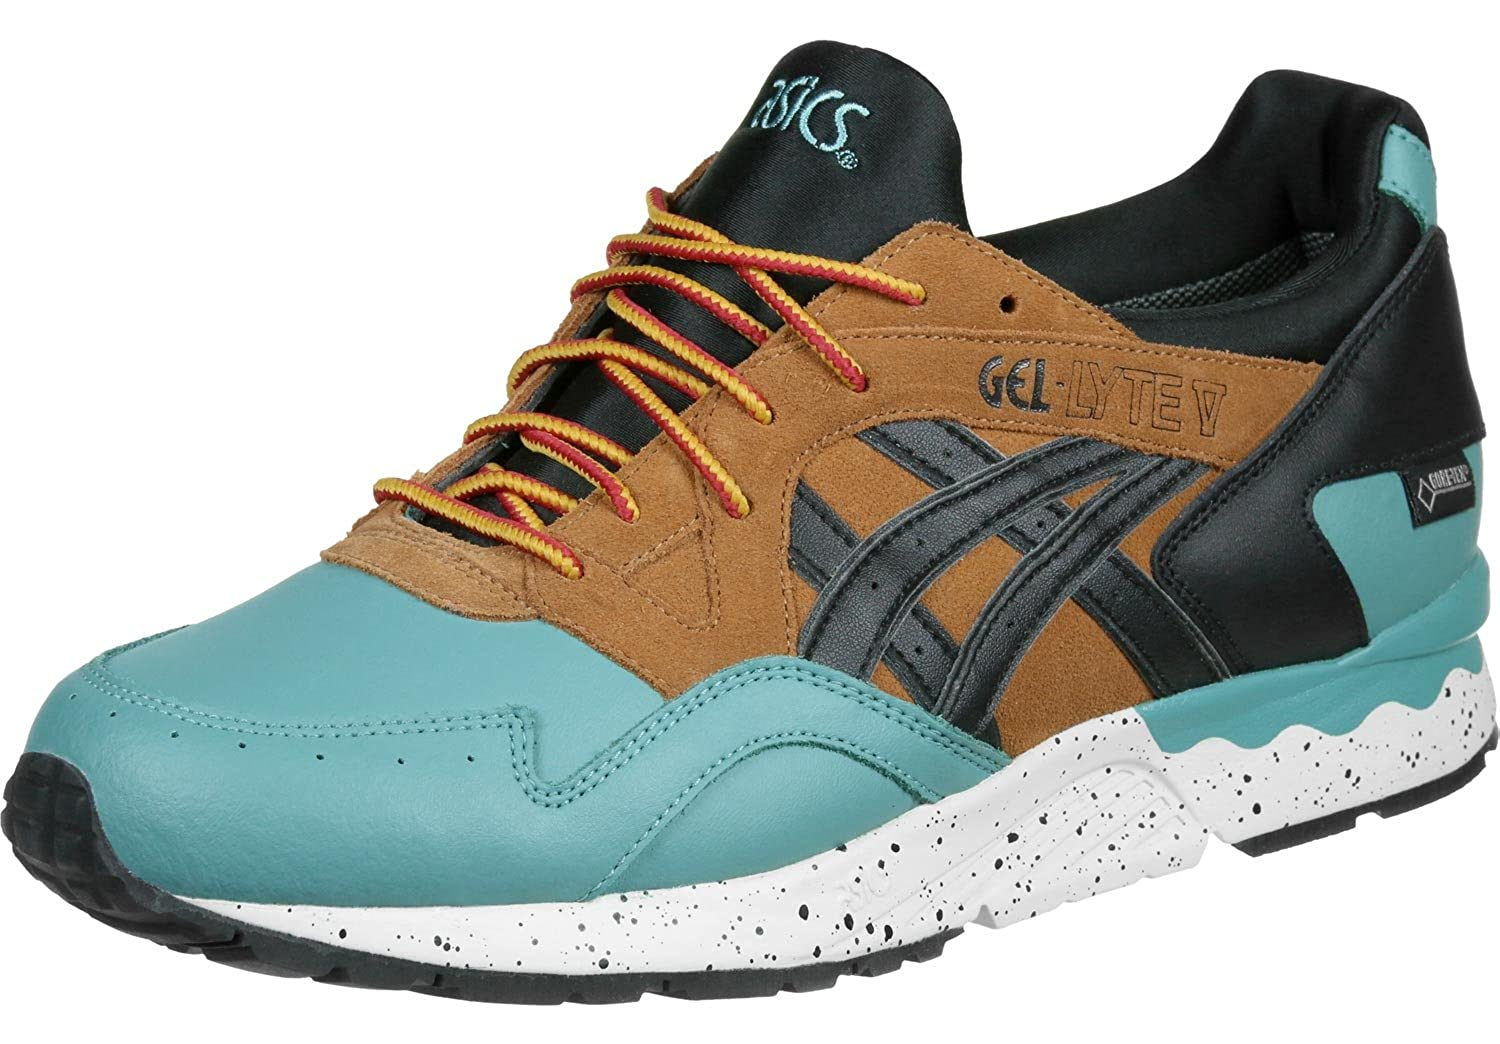 Clásico abrazo traductor  Buy ASICS Men's Gel-Lyte V Gore-tex Pack Sneakers (hl6e2) Kingfisher/Black  UK 8.5 / EU 43.5 / US 9.5 at Amazon.in